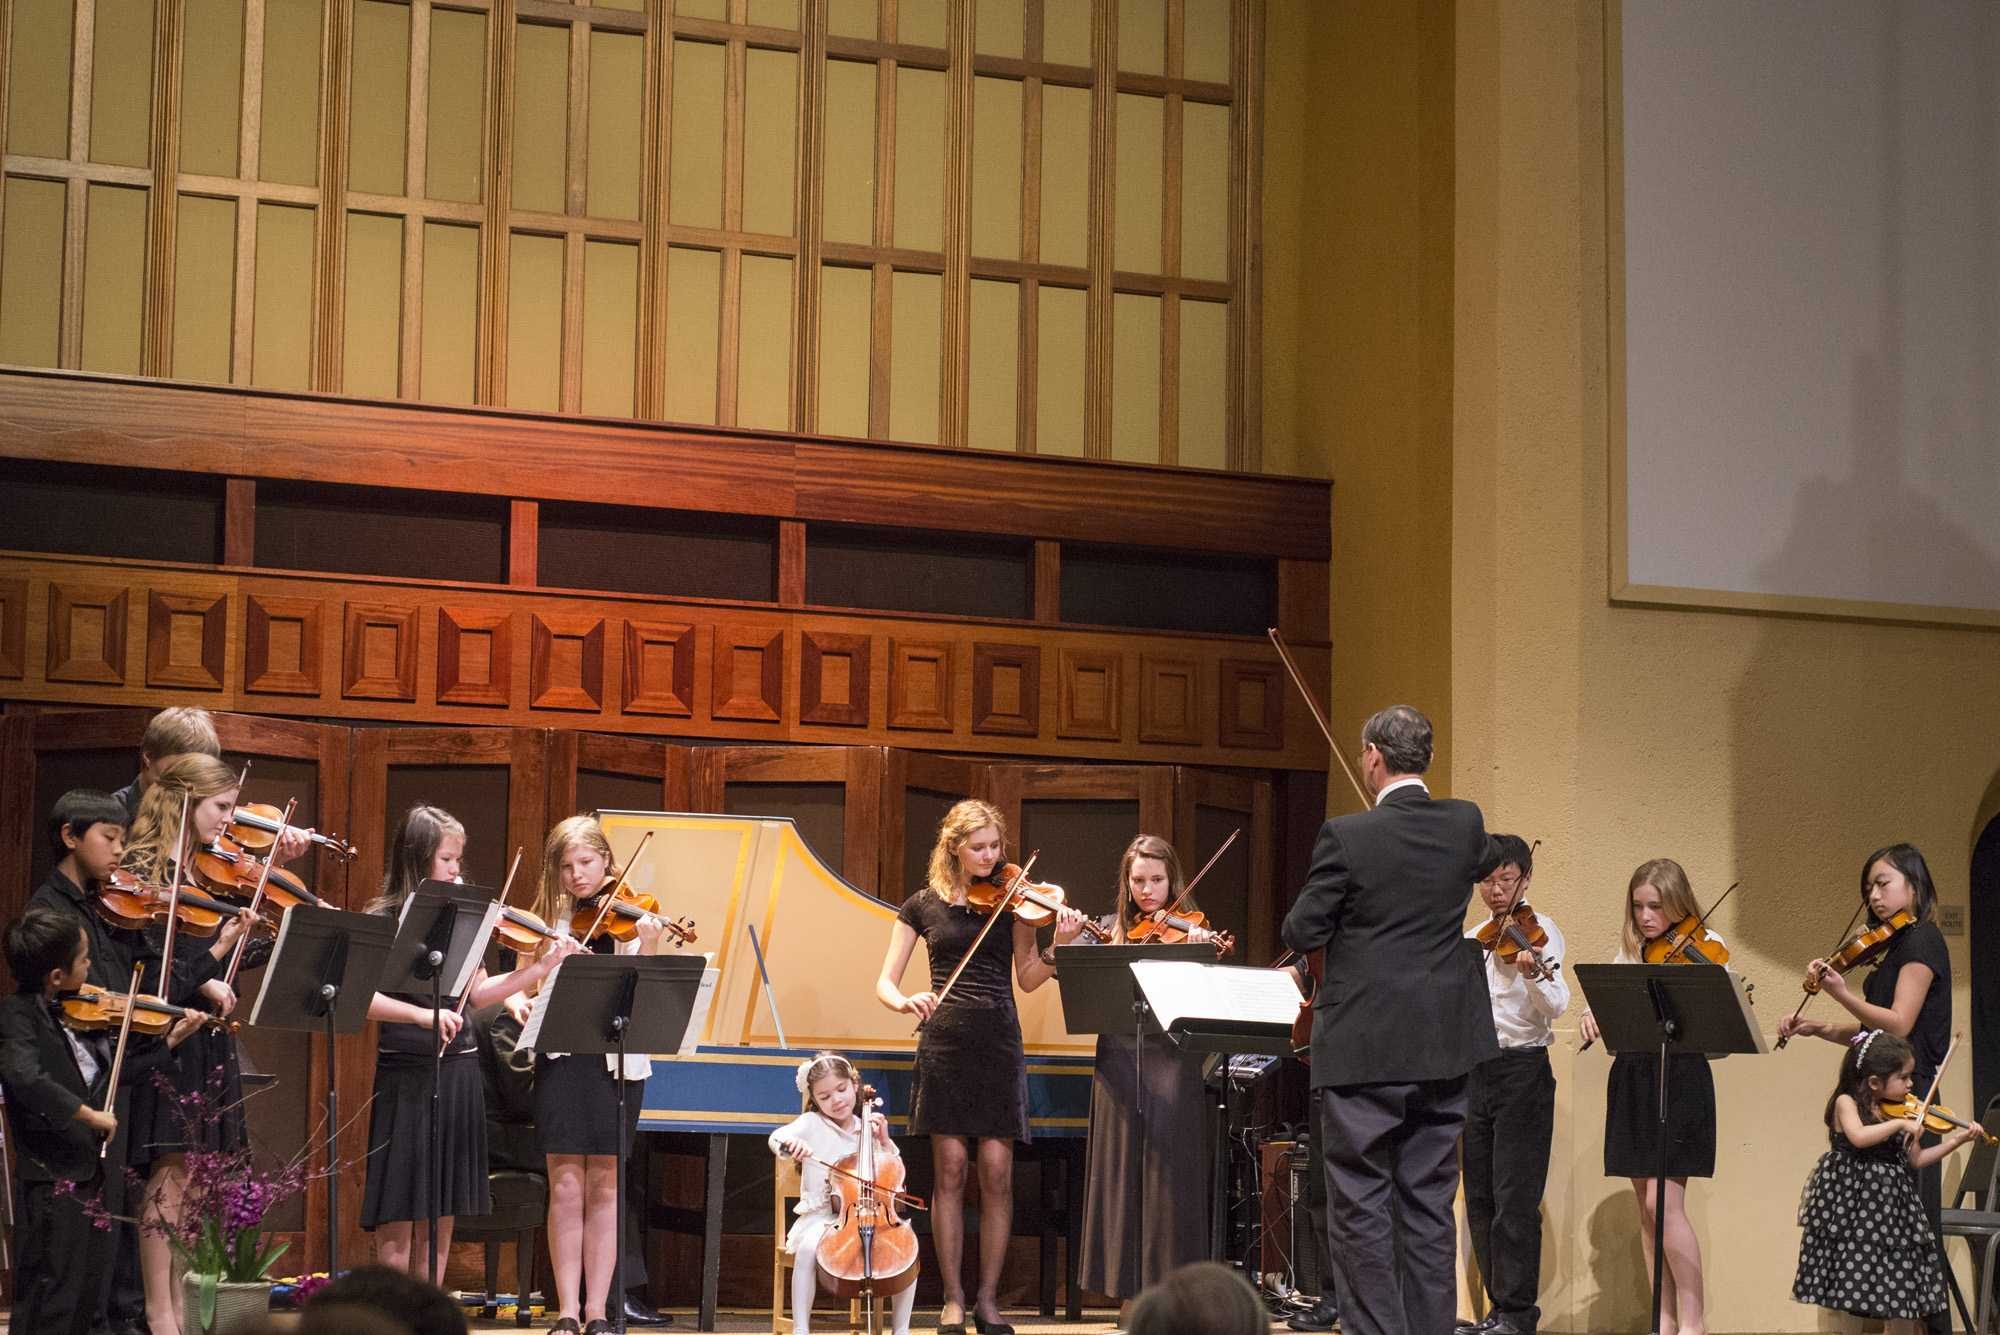 Classical celebration captivates with young talent